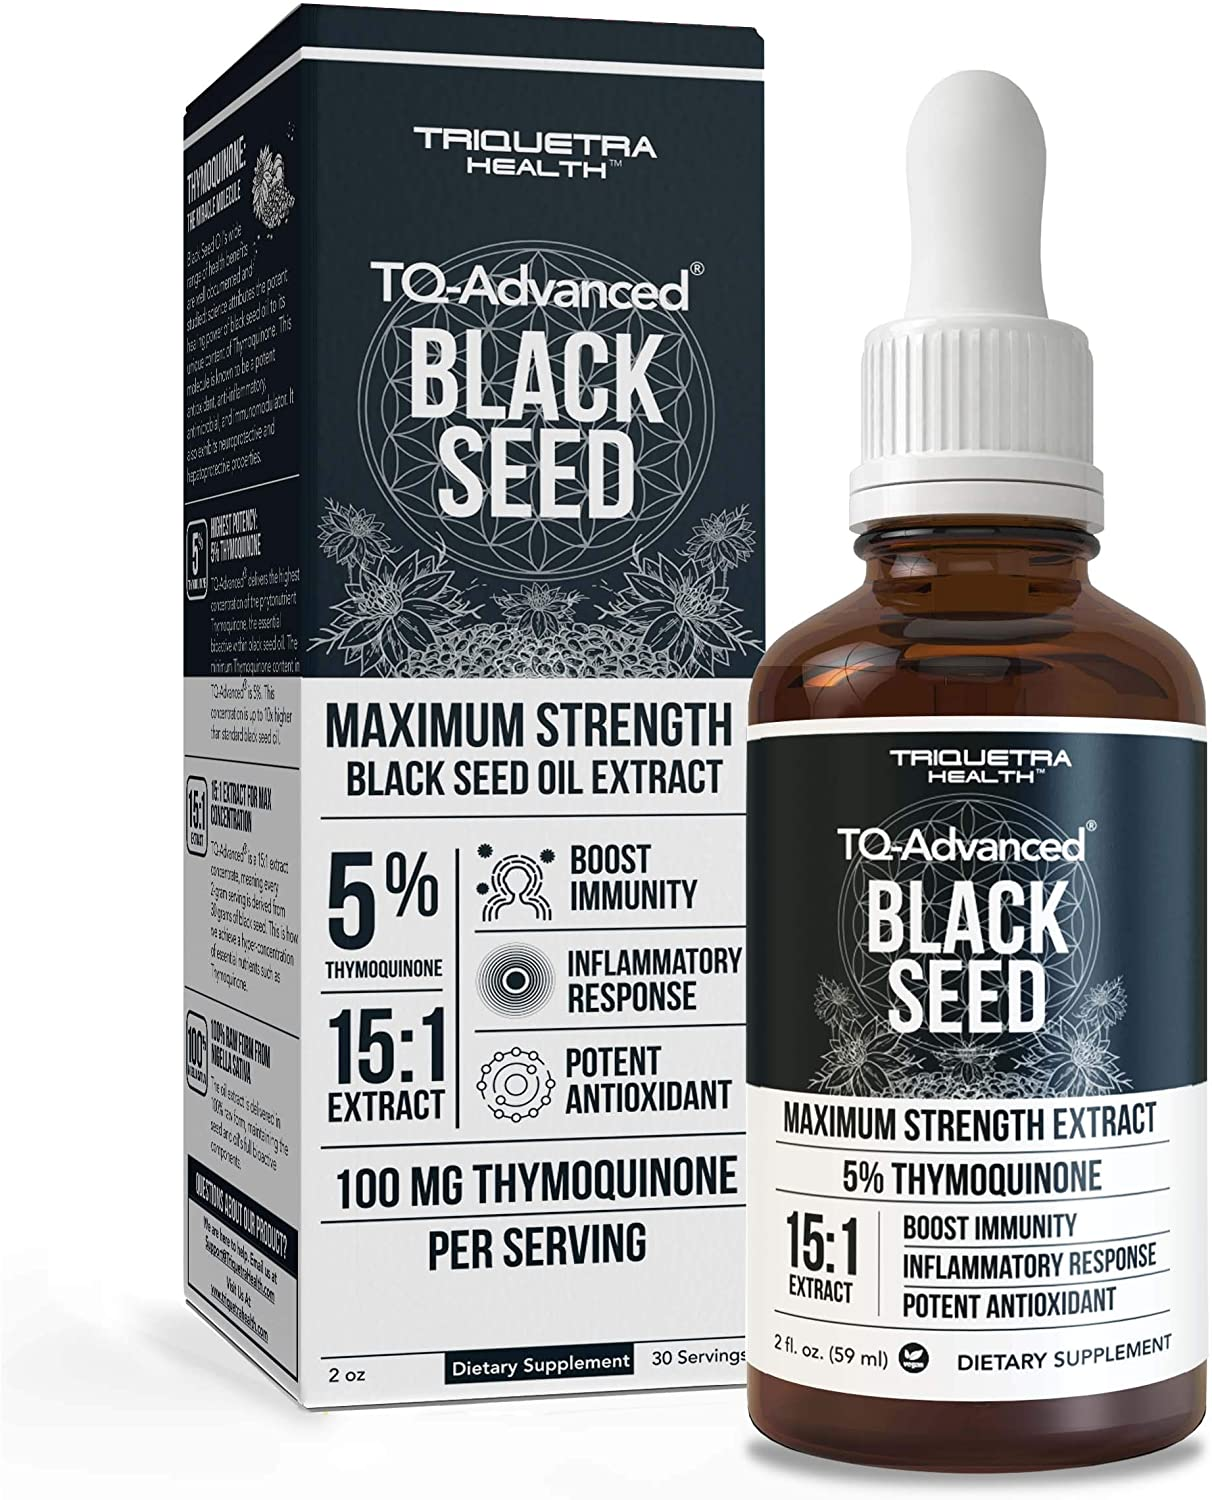 Black Seed Oil TQ Advanced - 5% Thymoquinone, Highest Concentration Available - 15:1 Concentrate from Nigella Sativa, Raw Form, Vegan, Glass Bottle Plus Dropper (2 oz. - 30 Servings)